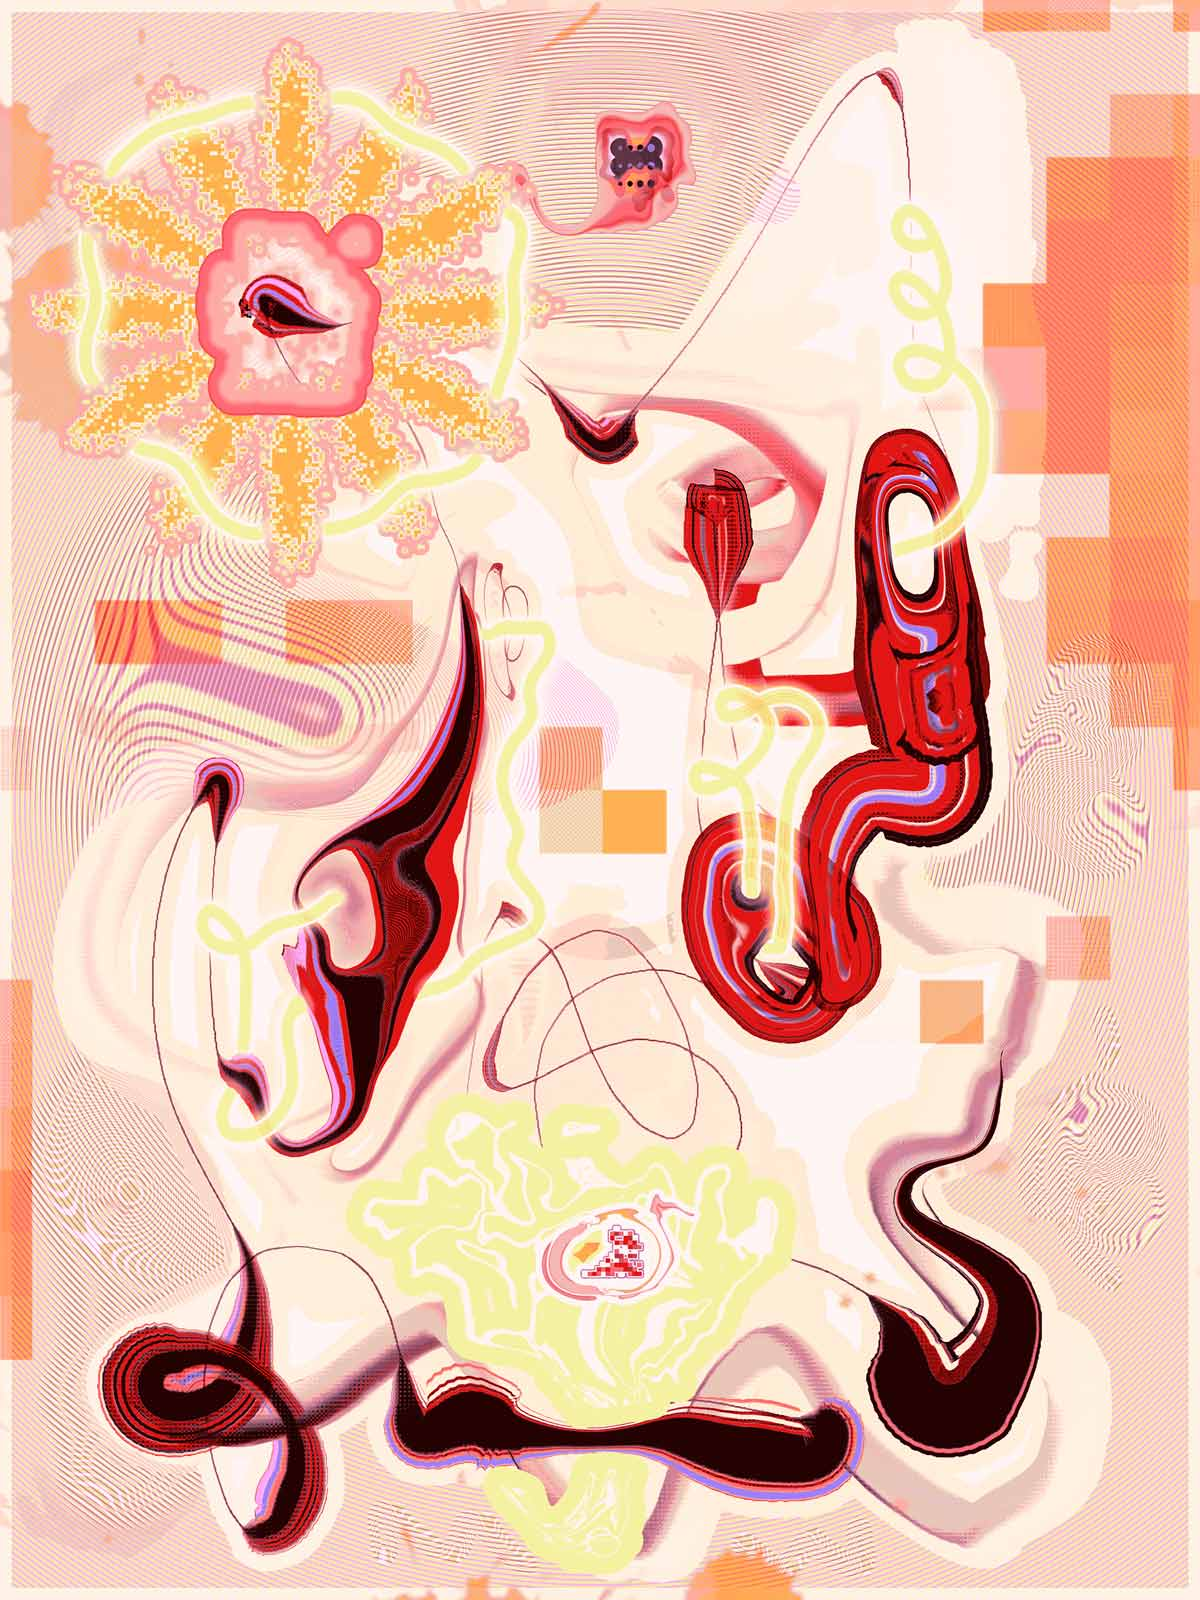 A vertically oriented print featuring surreal, organic shapes in pink, yellow, peach, and white with dark linework.